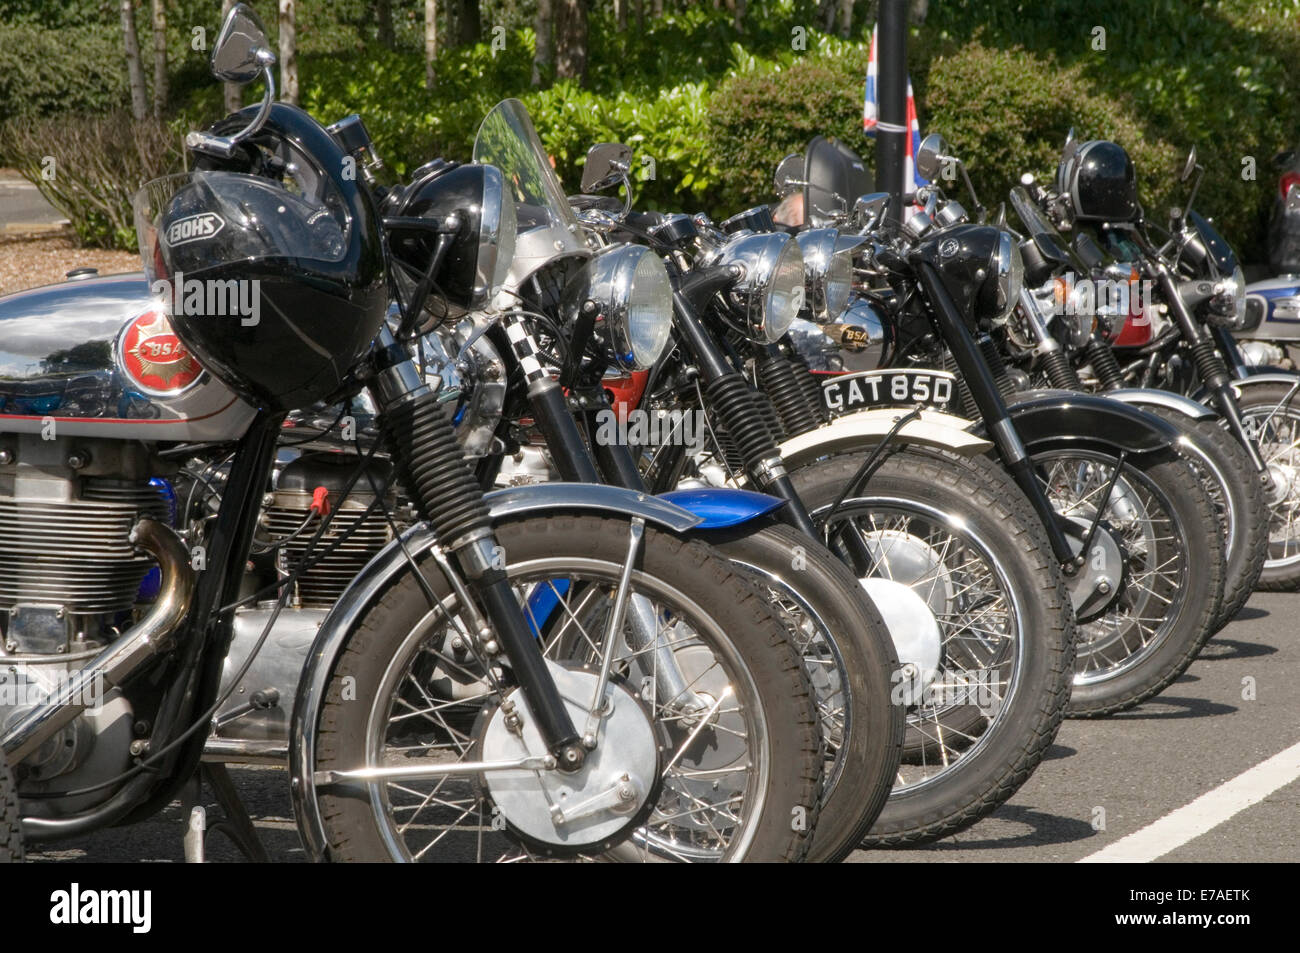 old British motorbikes classic motorcycles brands brand motor bikes cycles bike cycle spokes spoked wheels wheel - Stock Image